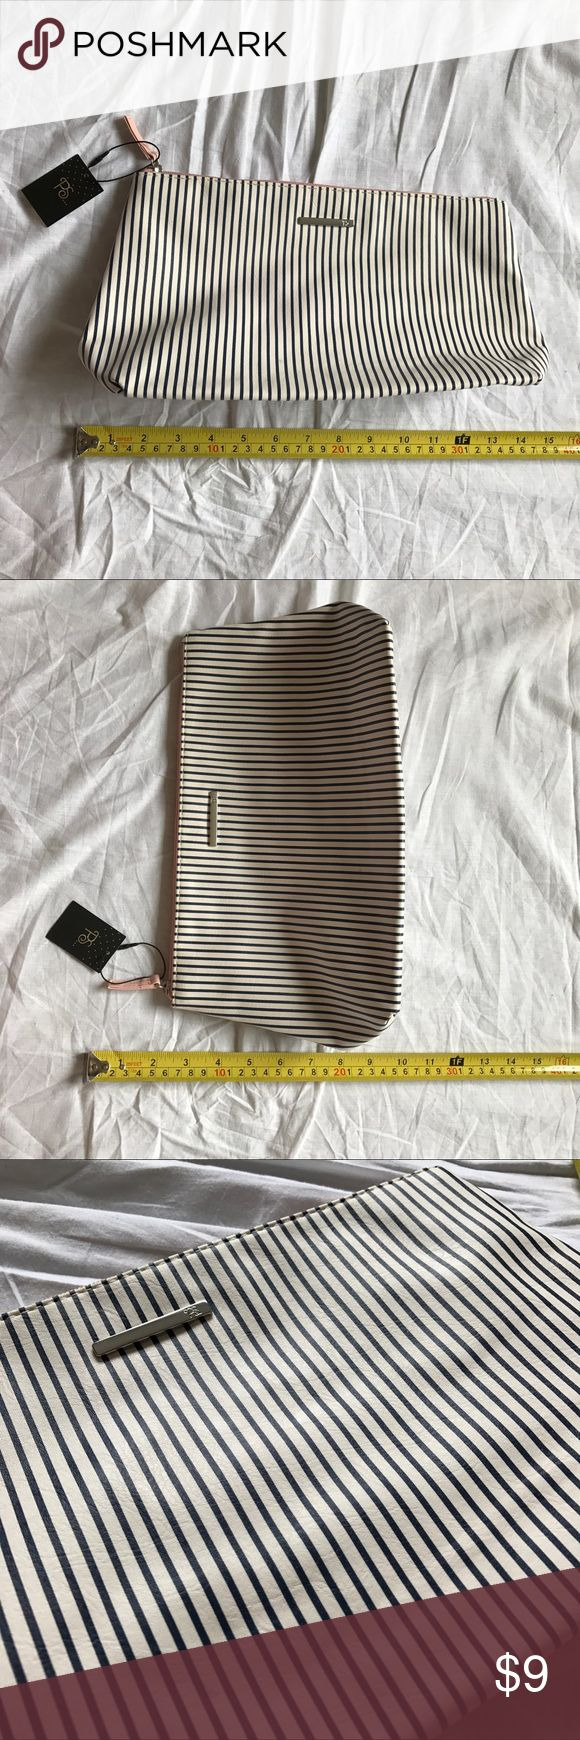 """Primark Stripes Pouch Brand new with tags. Great condition. L 1' H 7.5"""" W 4"""" Faux leather on the outside and pink lining on the inside. This listing is only for the pouch. Other items on this listing is not for sale. primark Makeup"""